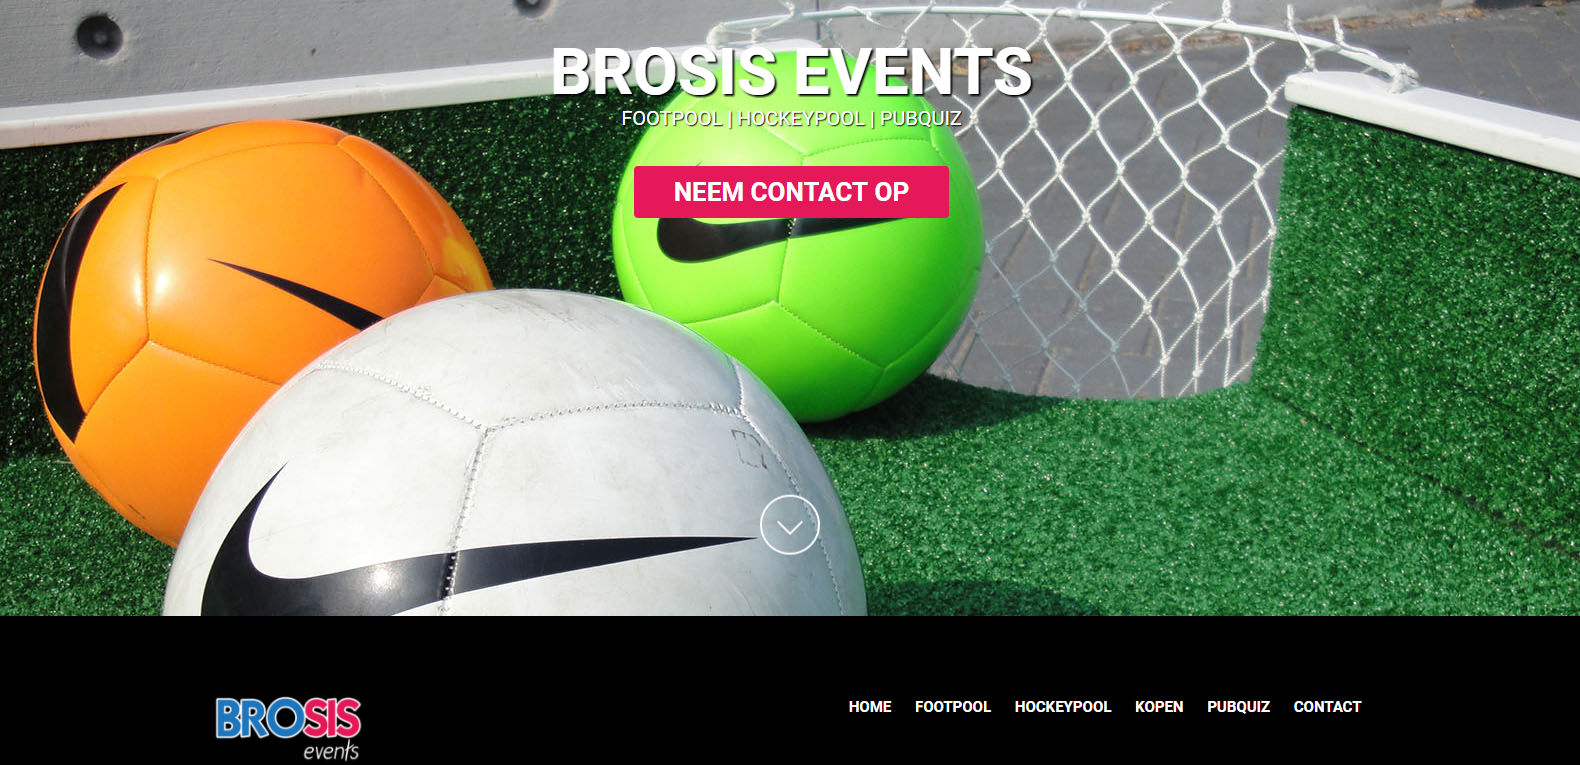 BROSIS events